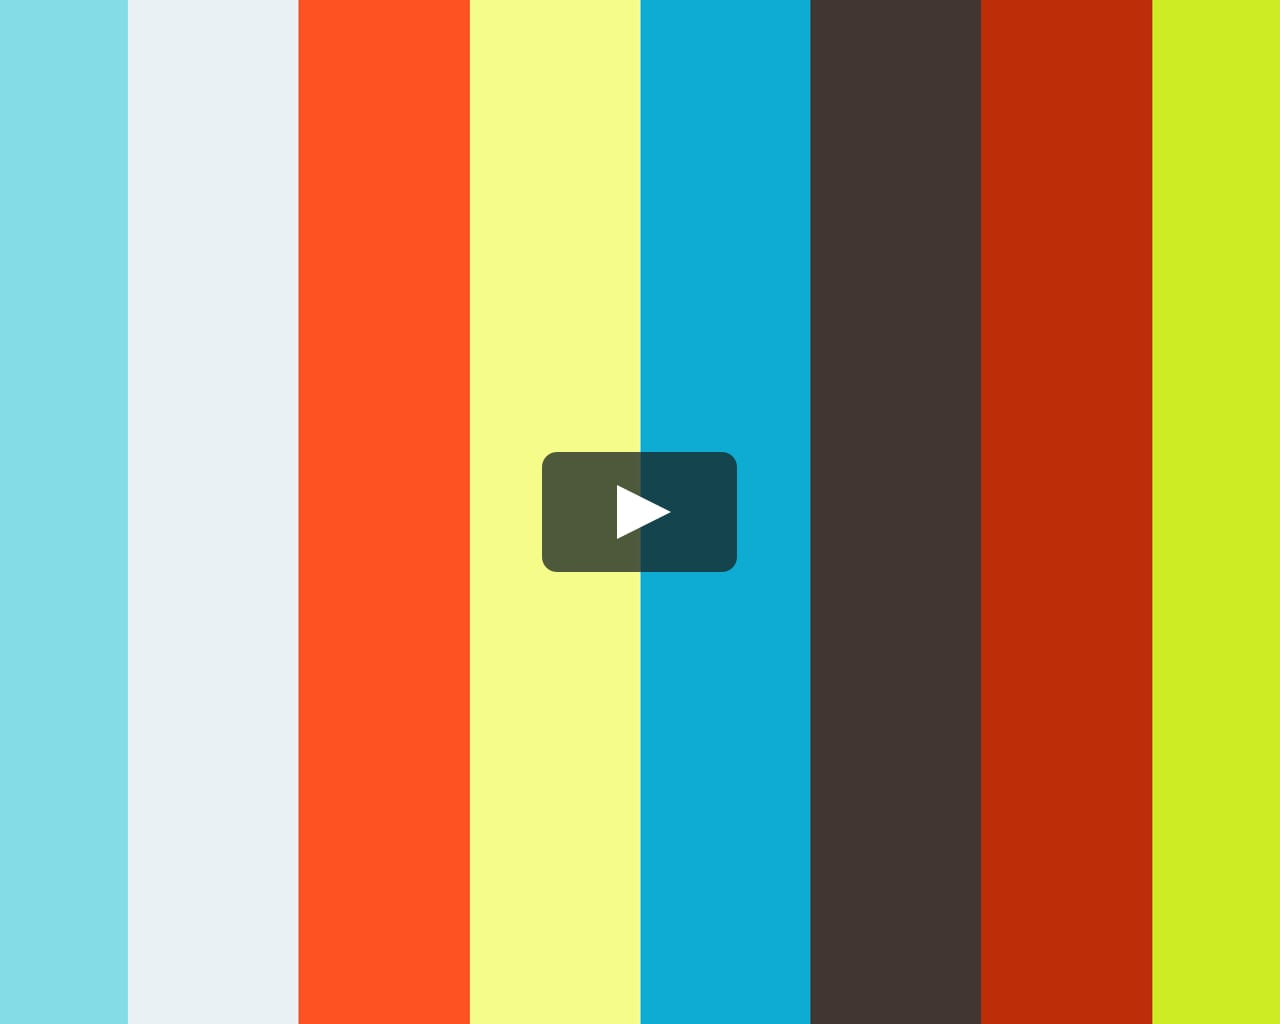 War of Kings Hack Tool on Facebook Gameroom - How to get Diamonds and Gold